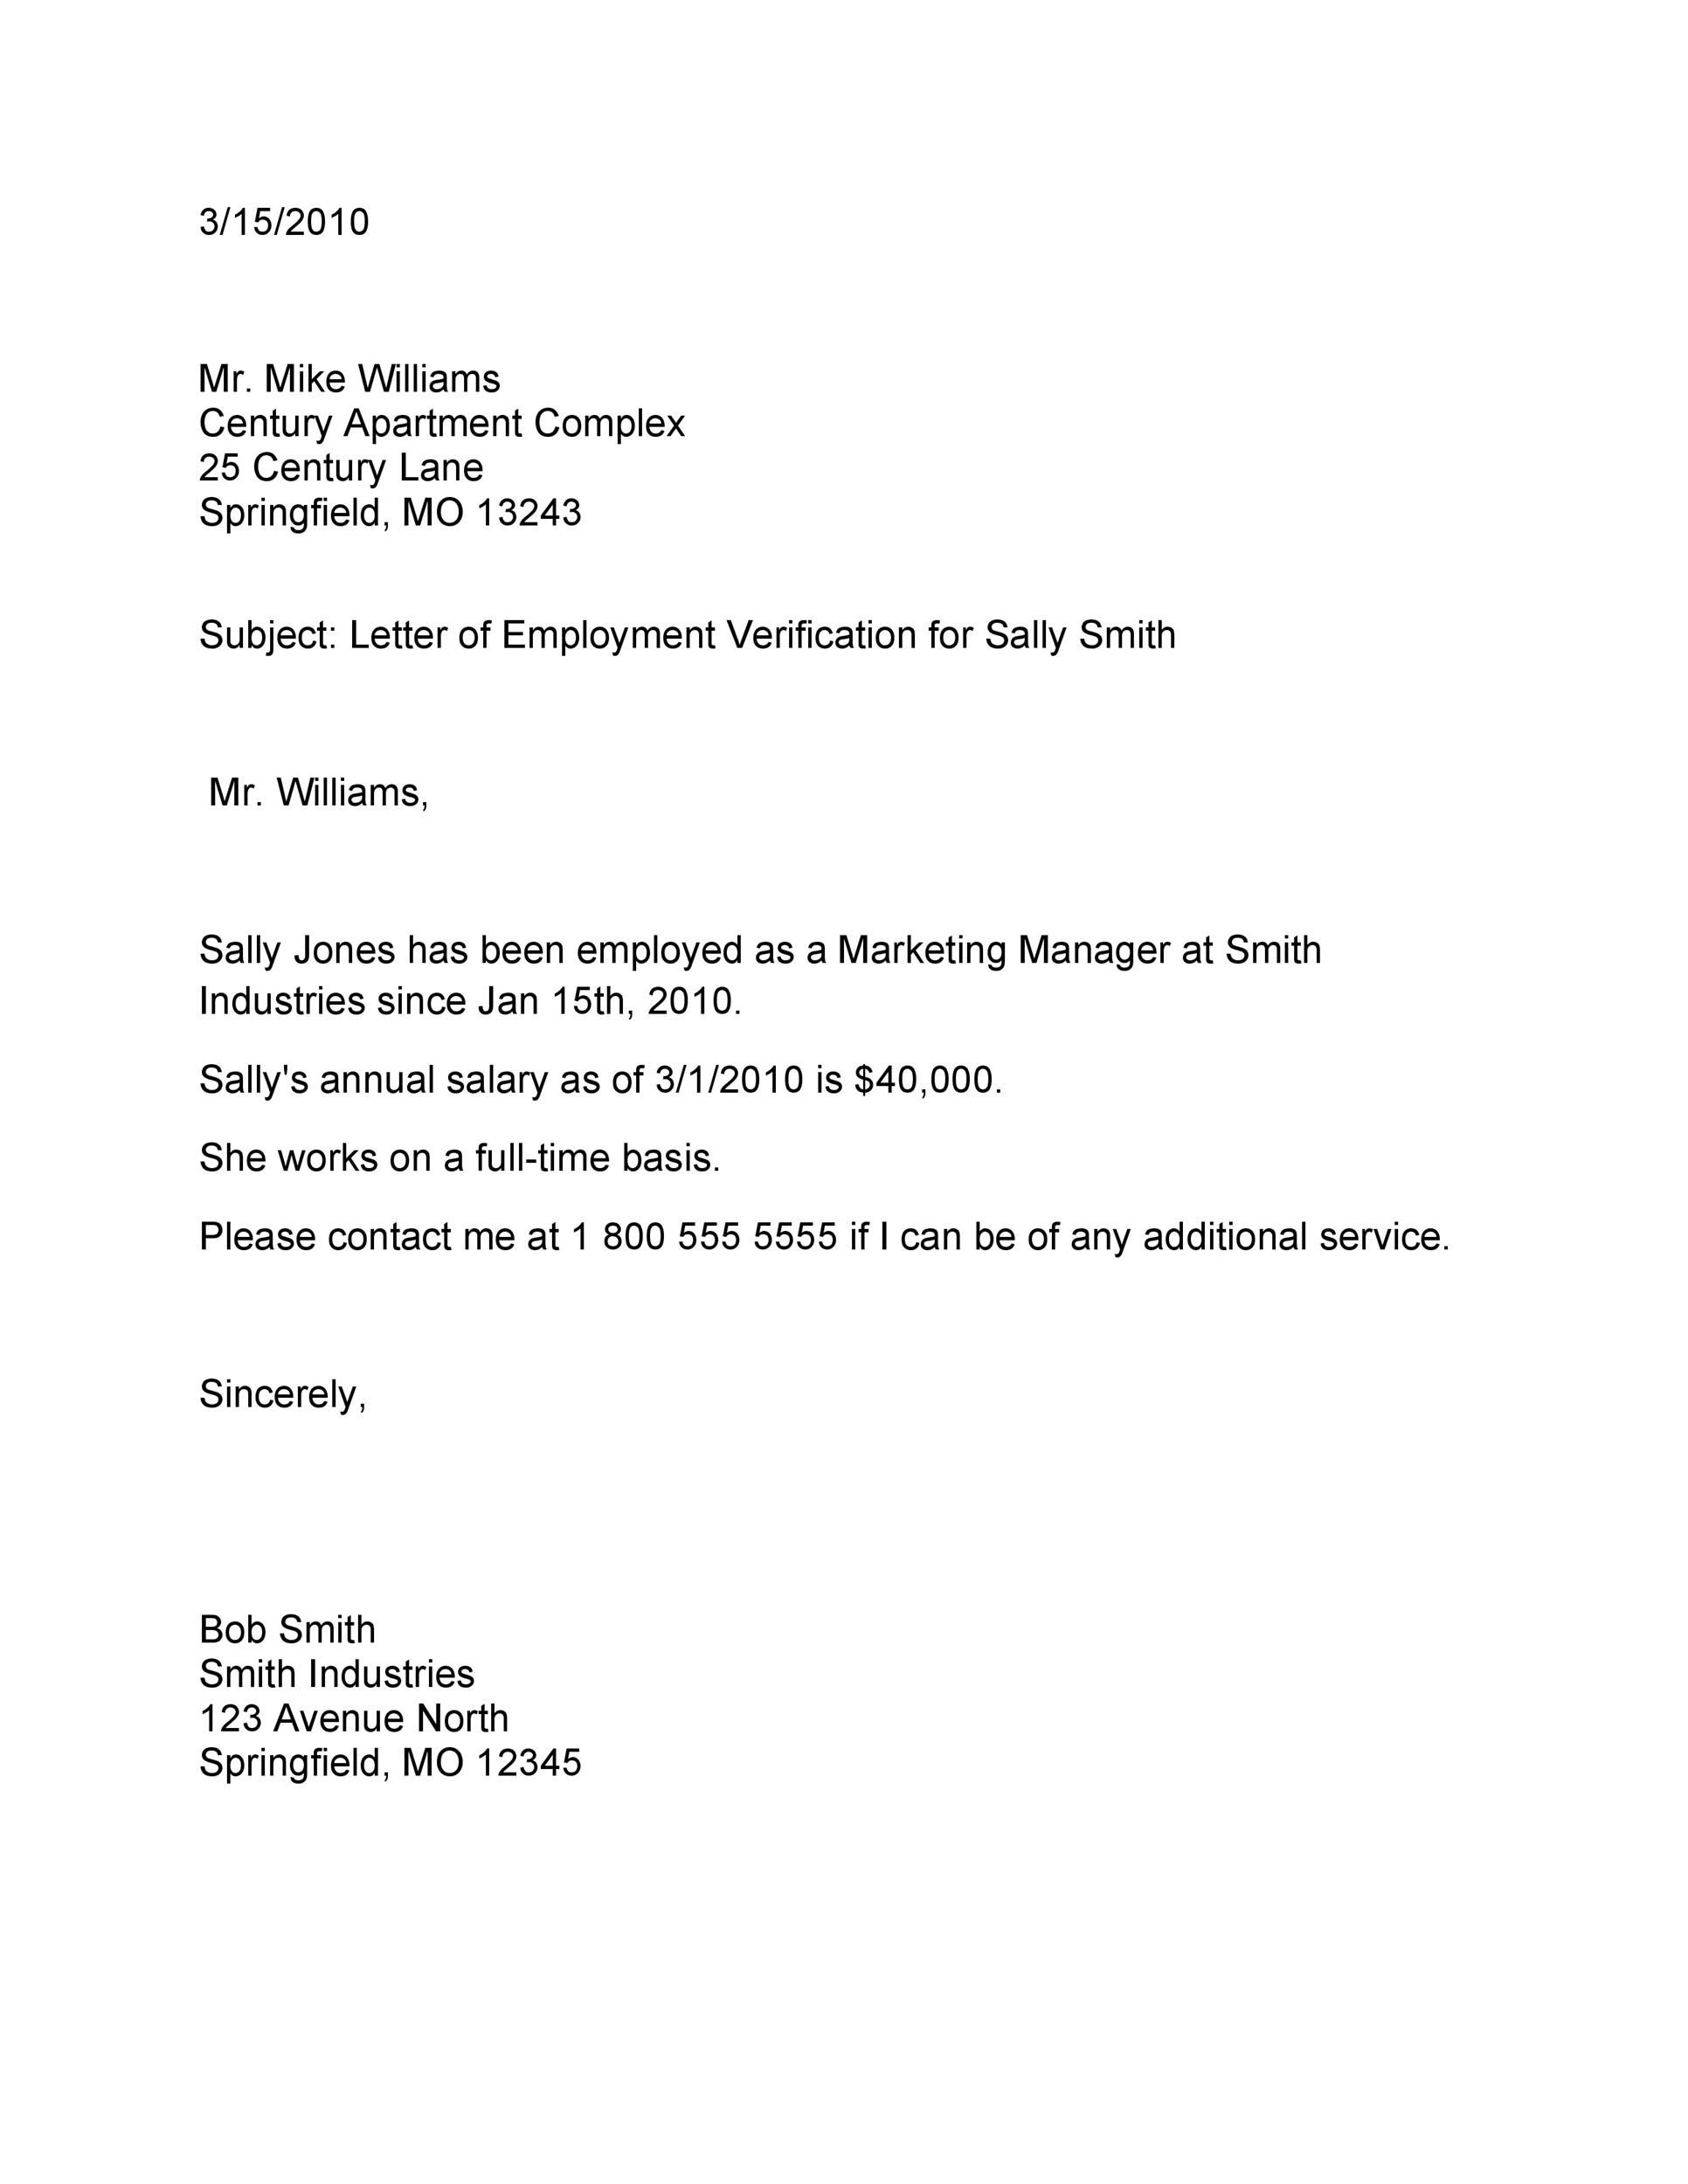 005 Stirring Letter Of Employment Template Highest Clarity  Confirmation Canada For MortgageFull